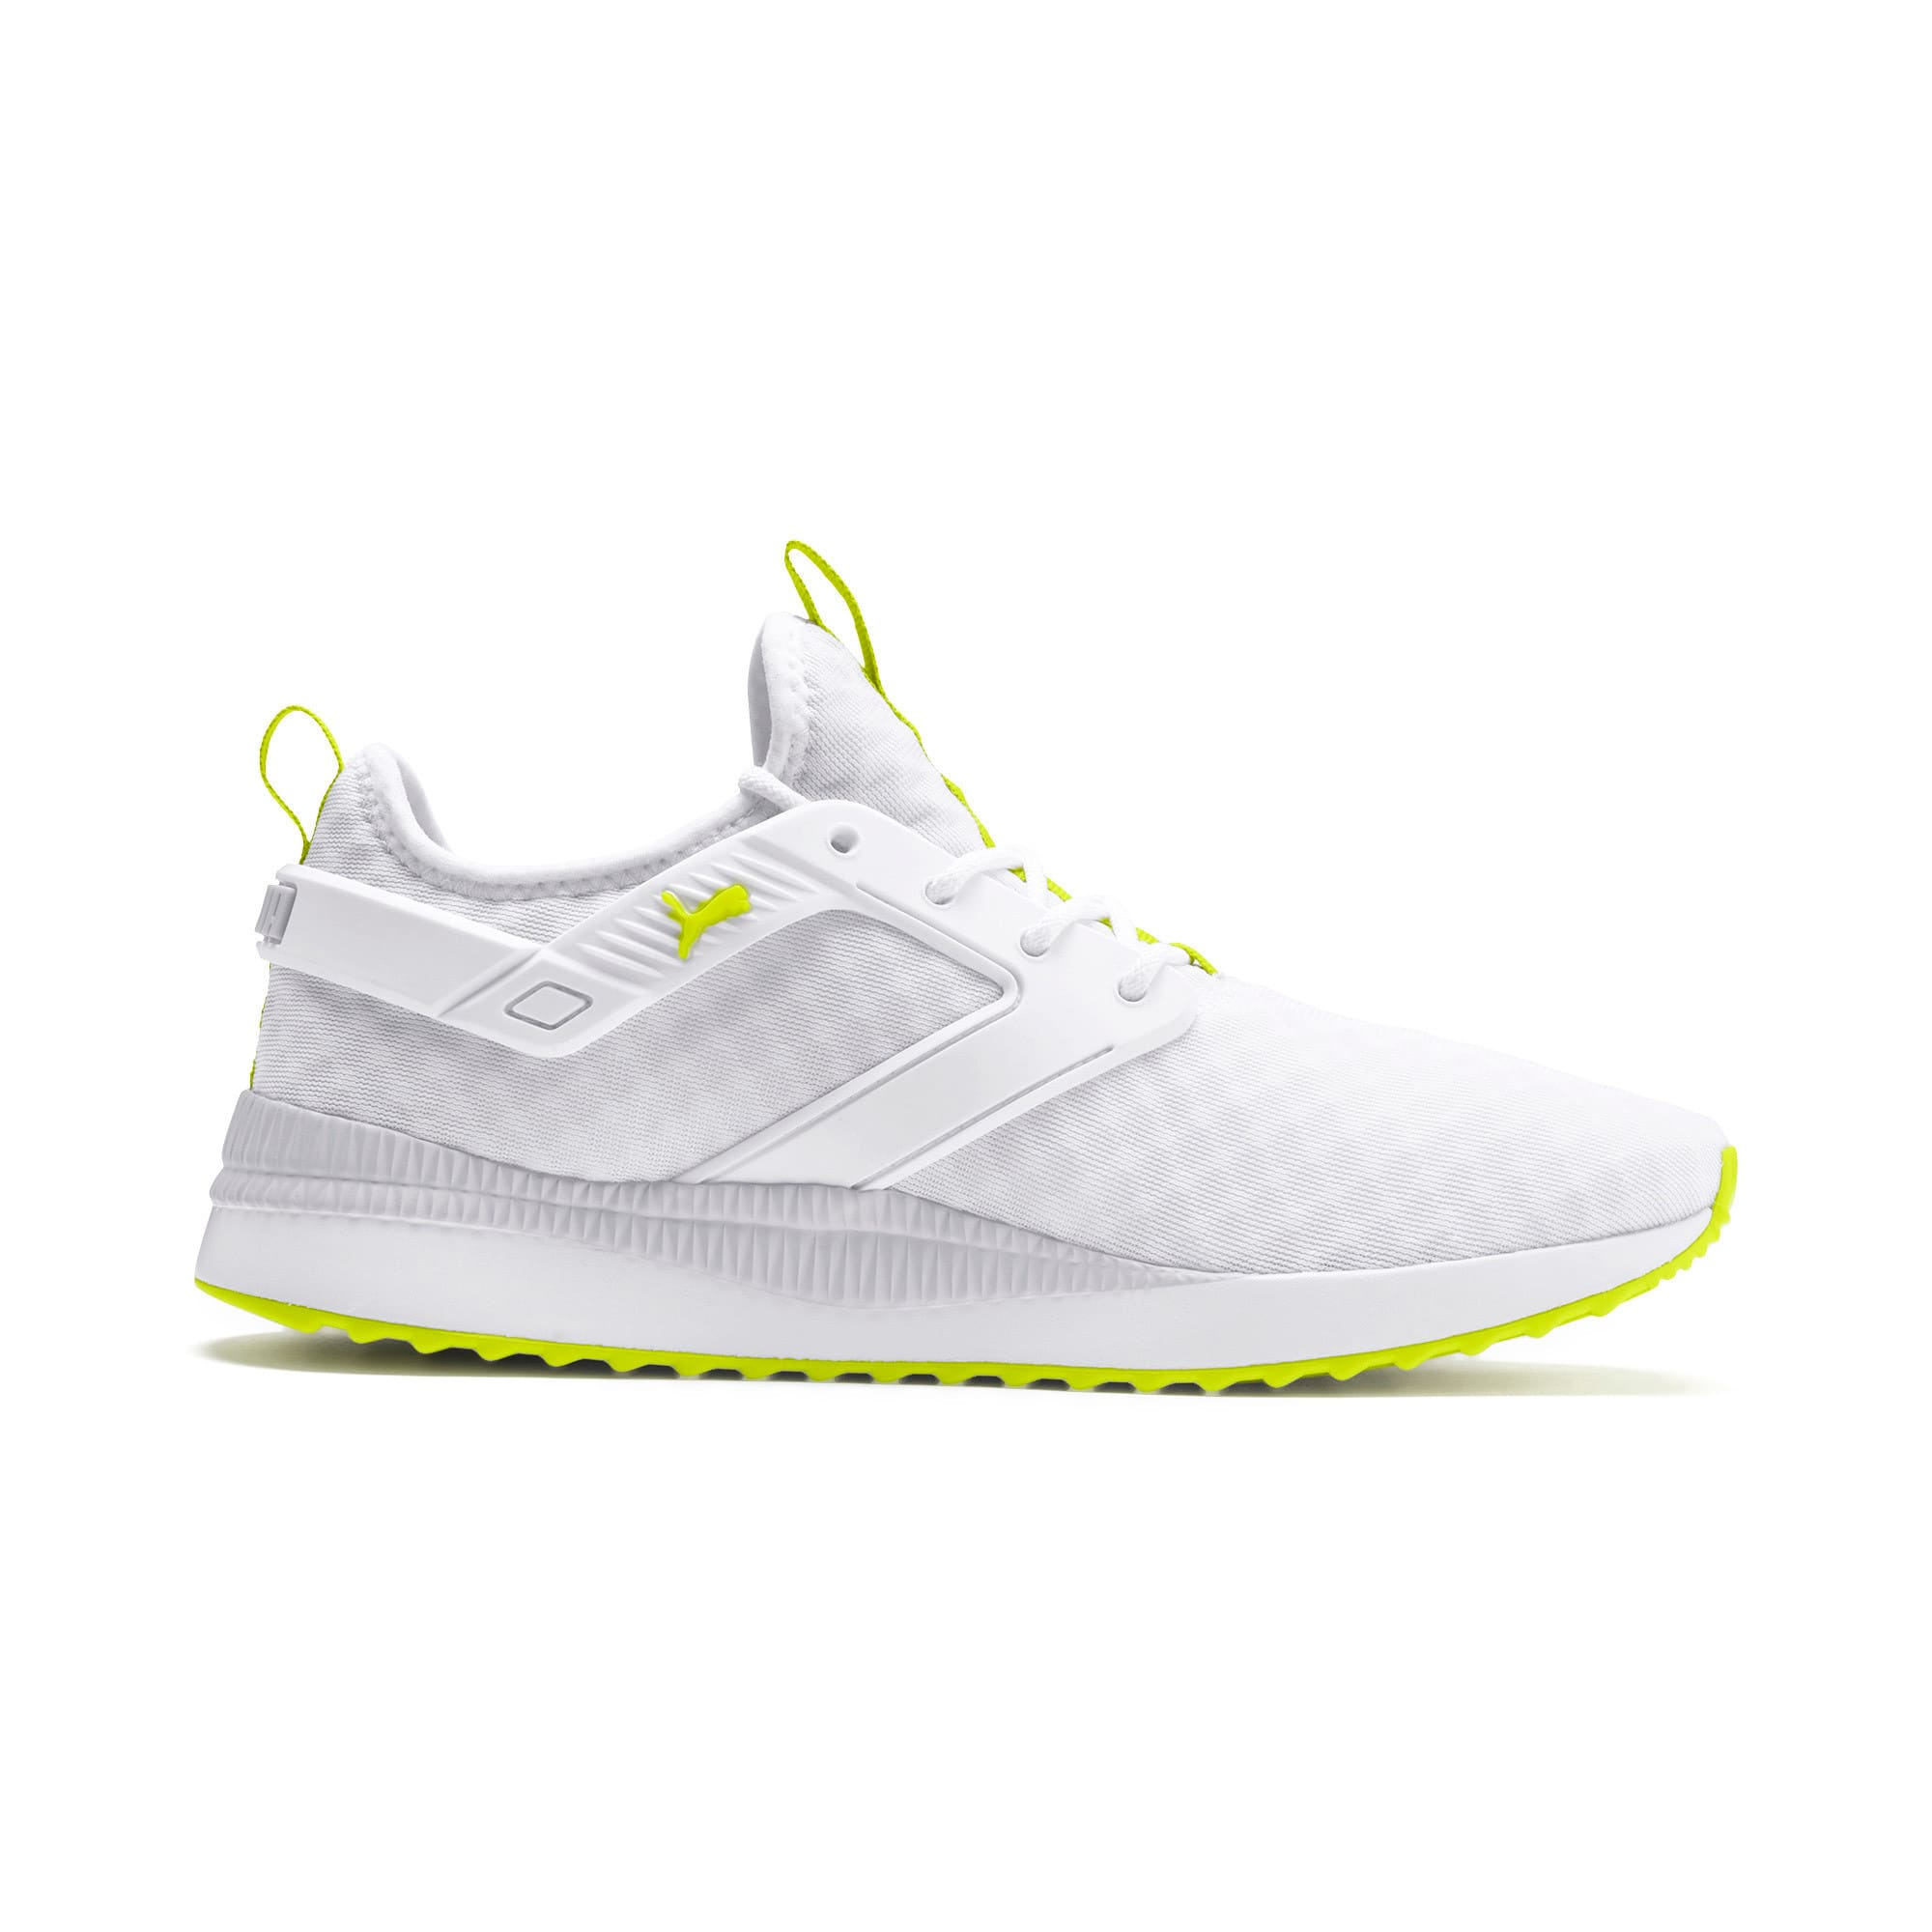 Thumbnail 6 of Pacer Next Excel Laufschuhe, Puma White-Nrgy Yellow, medium